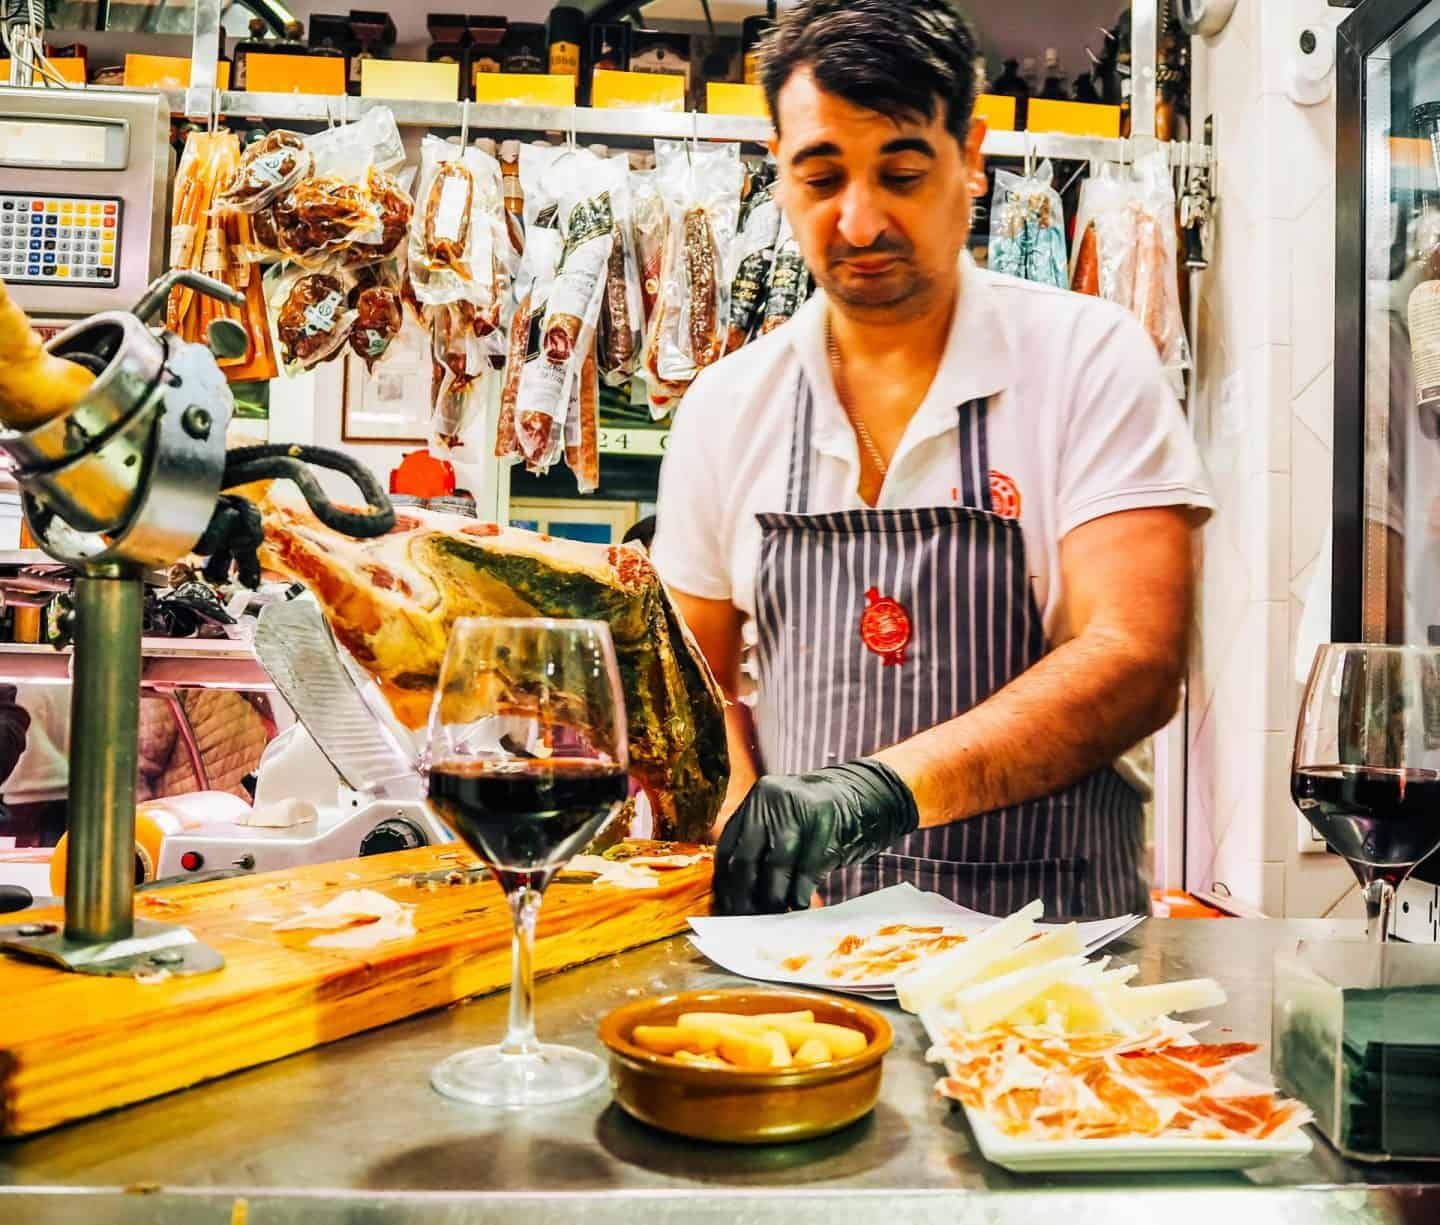 seville food experiences - market food in seville spain